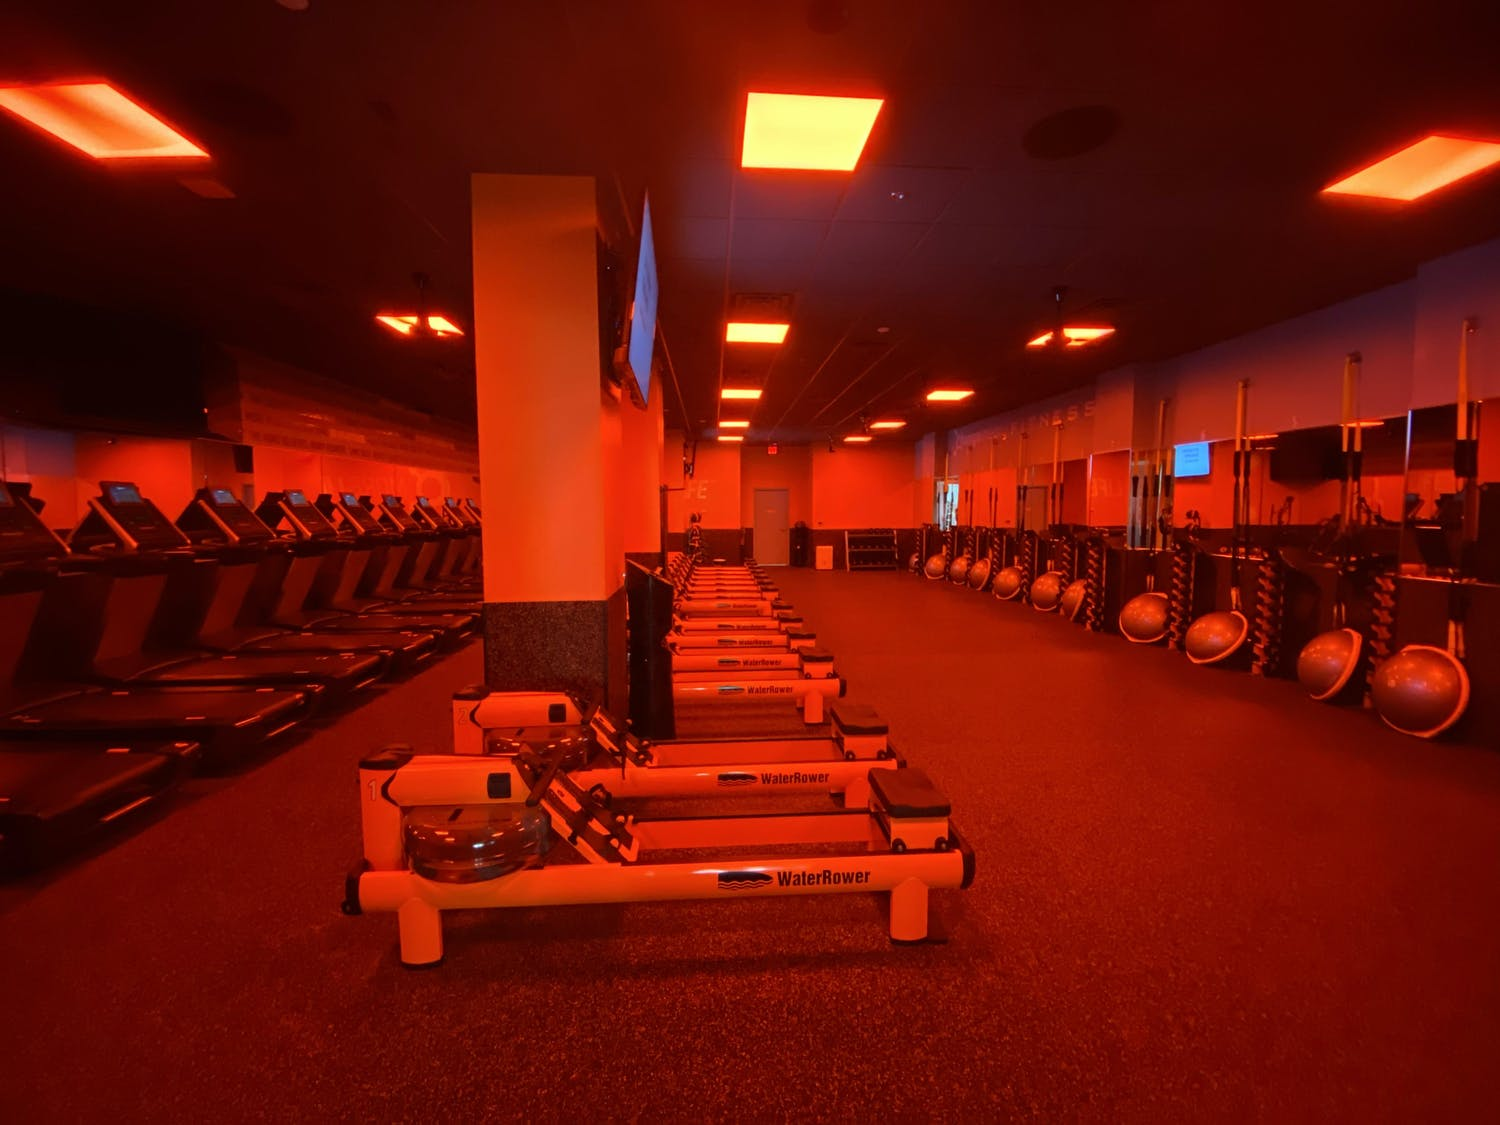 The new Orangetheory fitness location will hold its Grand Opening Party today from 4:30 to 6:30 p.m.